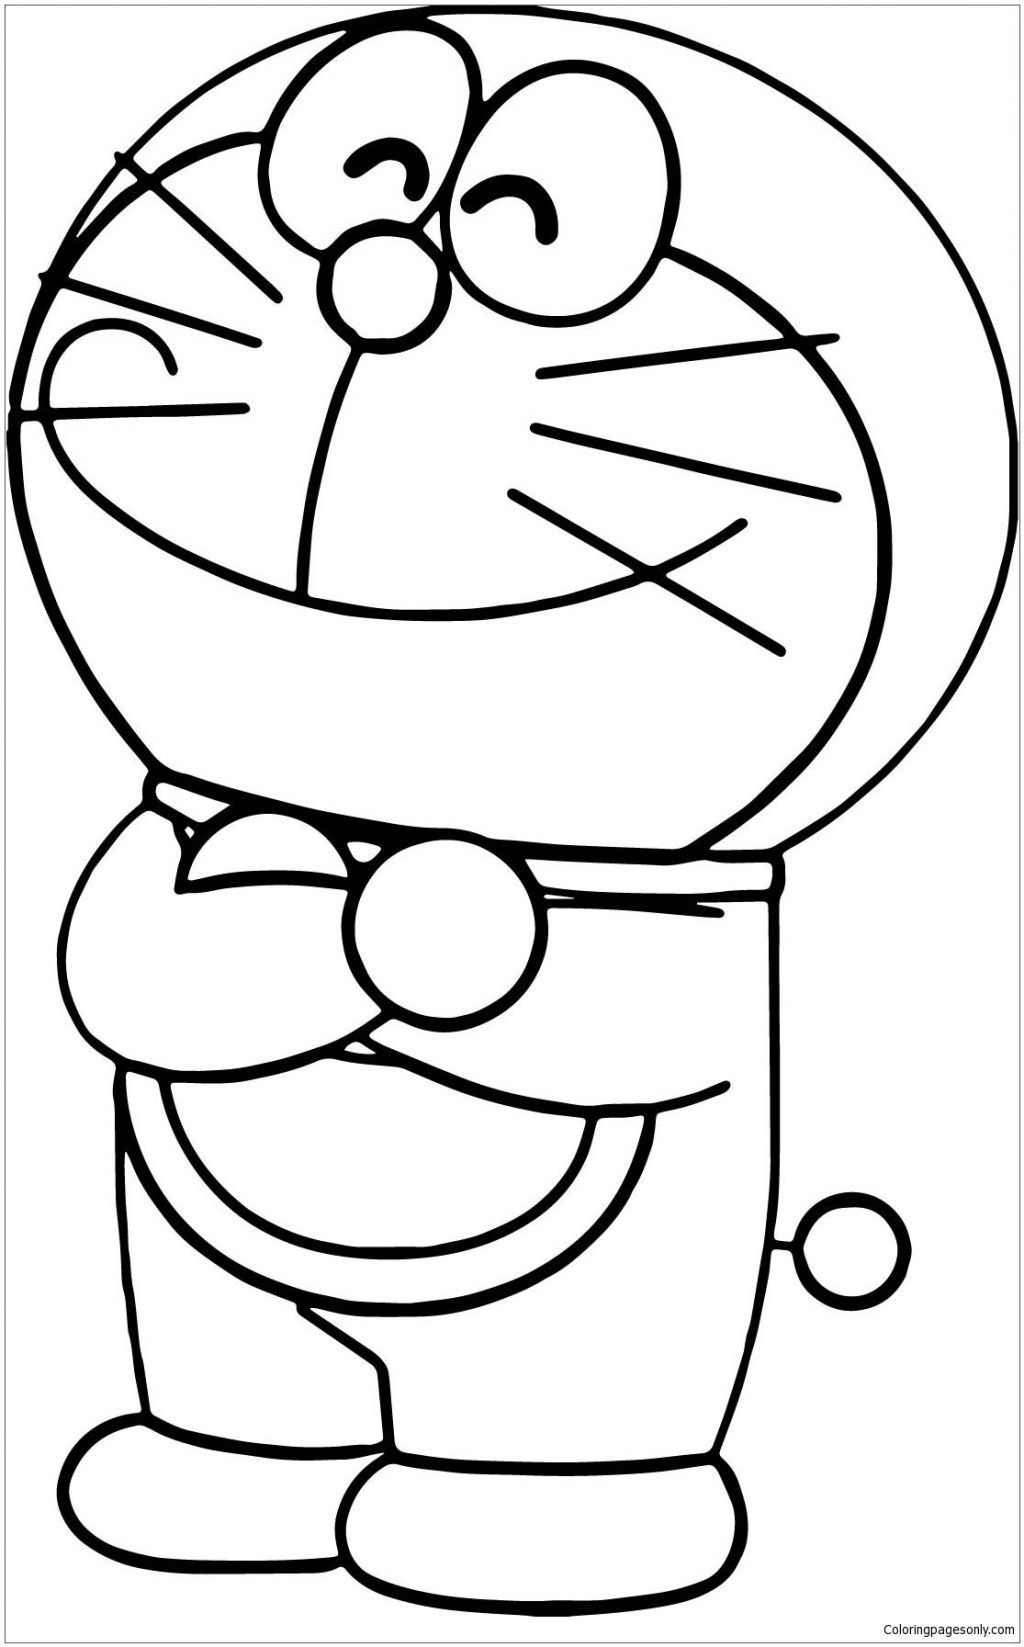 Doraemon Coloring Pages Easy Coloringpages